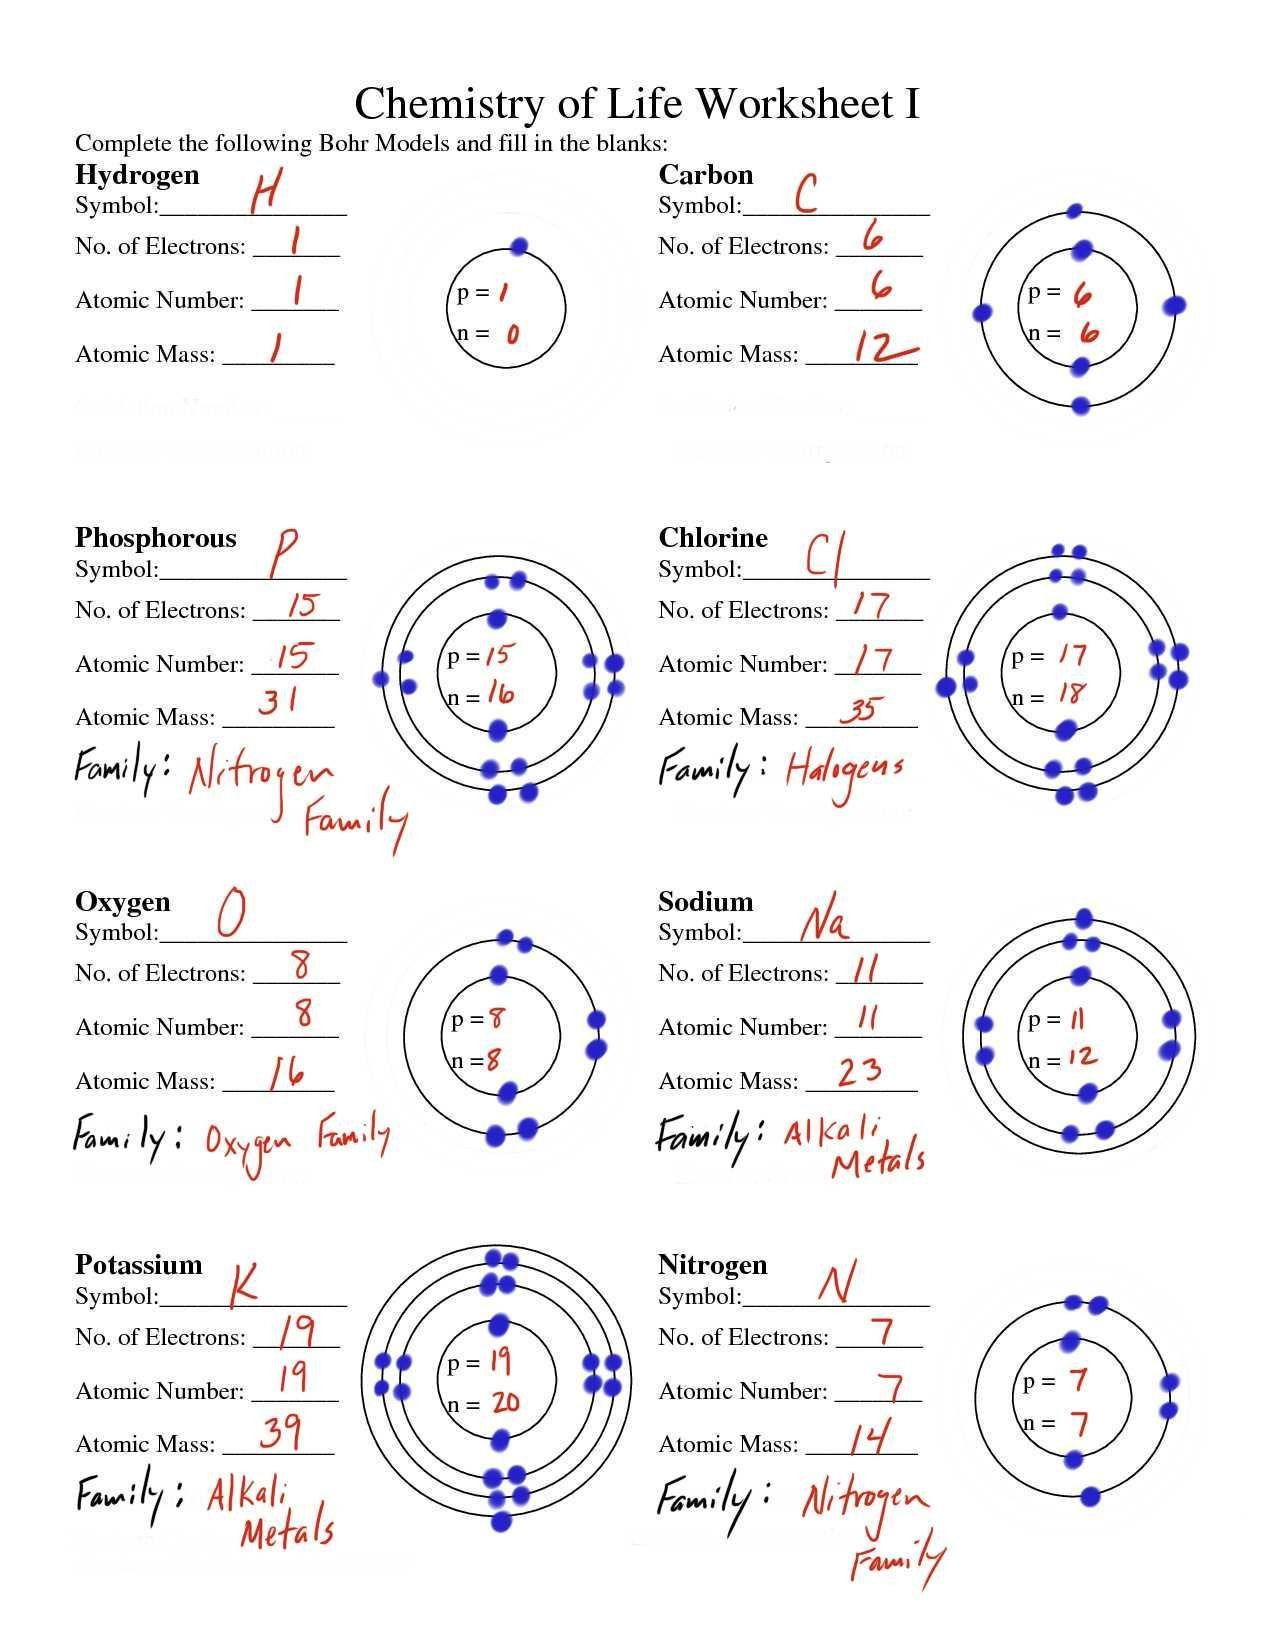 Drawing Lewis Structures Worksheet Recentrecent Drawing Lewis Structures Worksheet with Answers